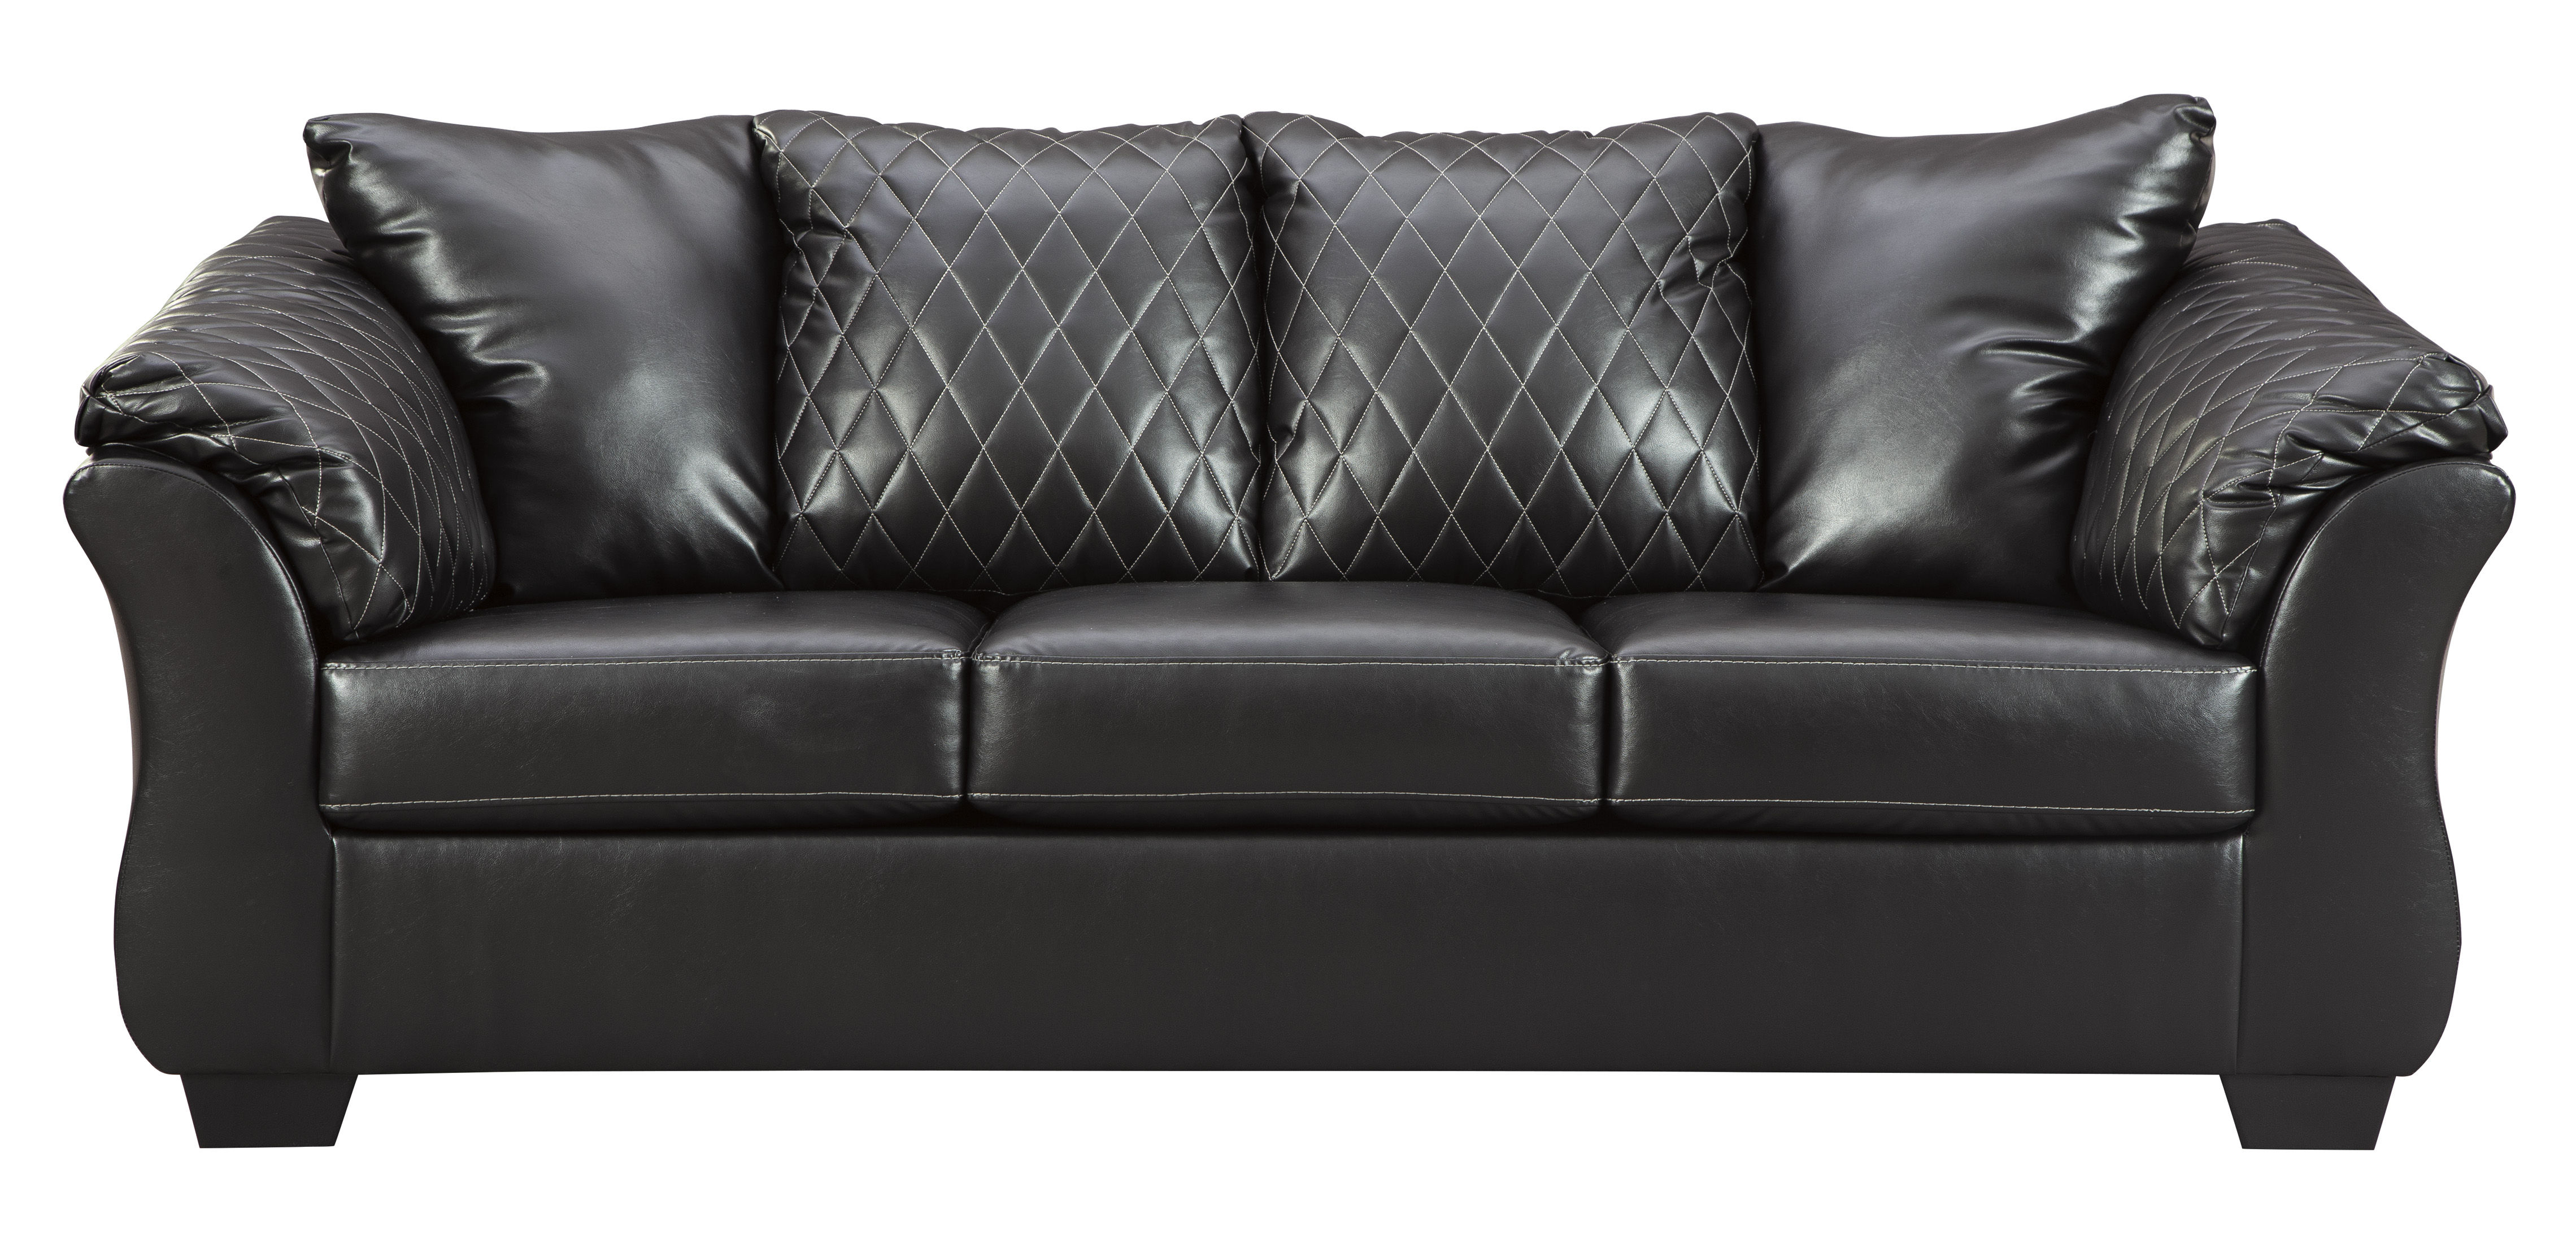 Admirable Ashley Furniture Betrillo Black Sofa Pabps2019 Chair Design Images Pabps2019Com